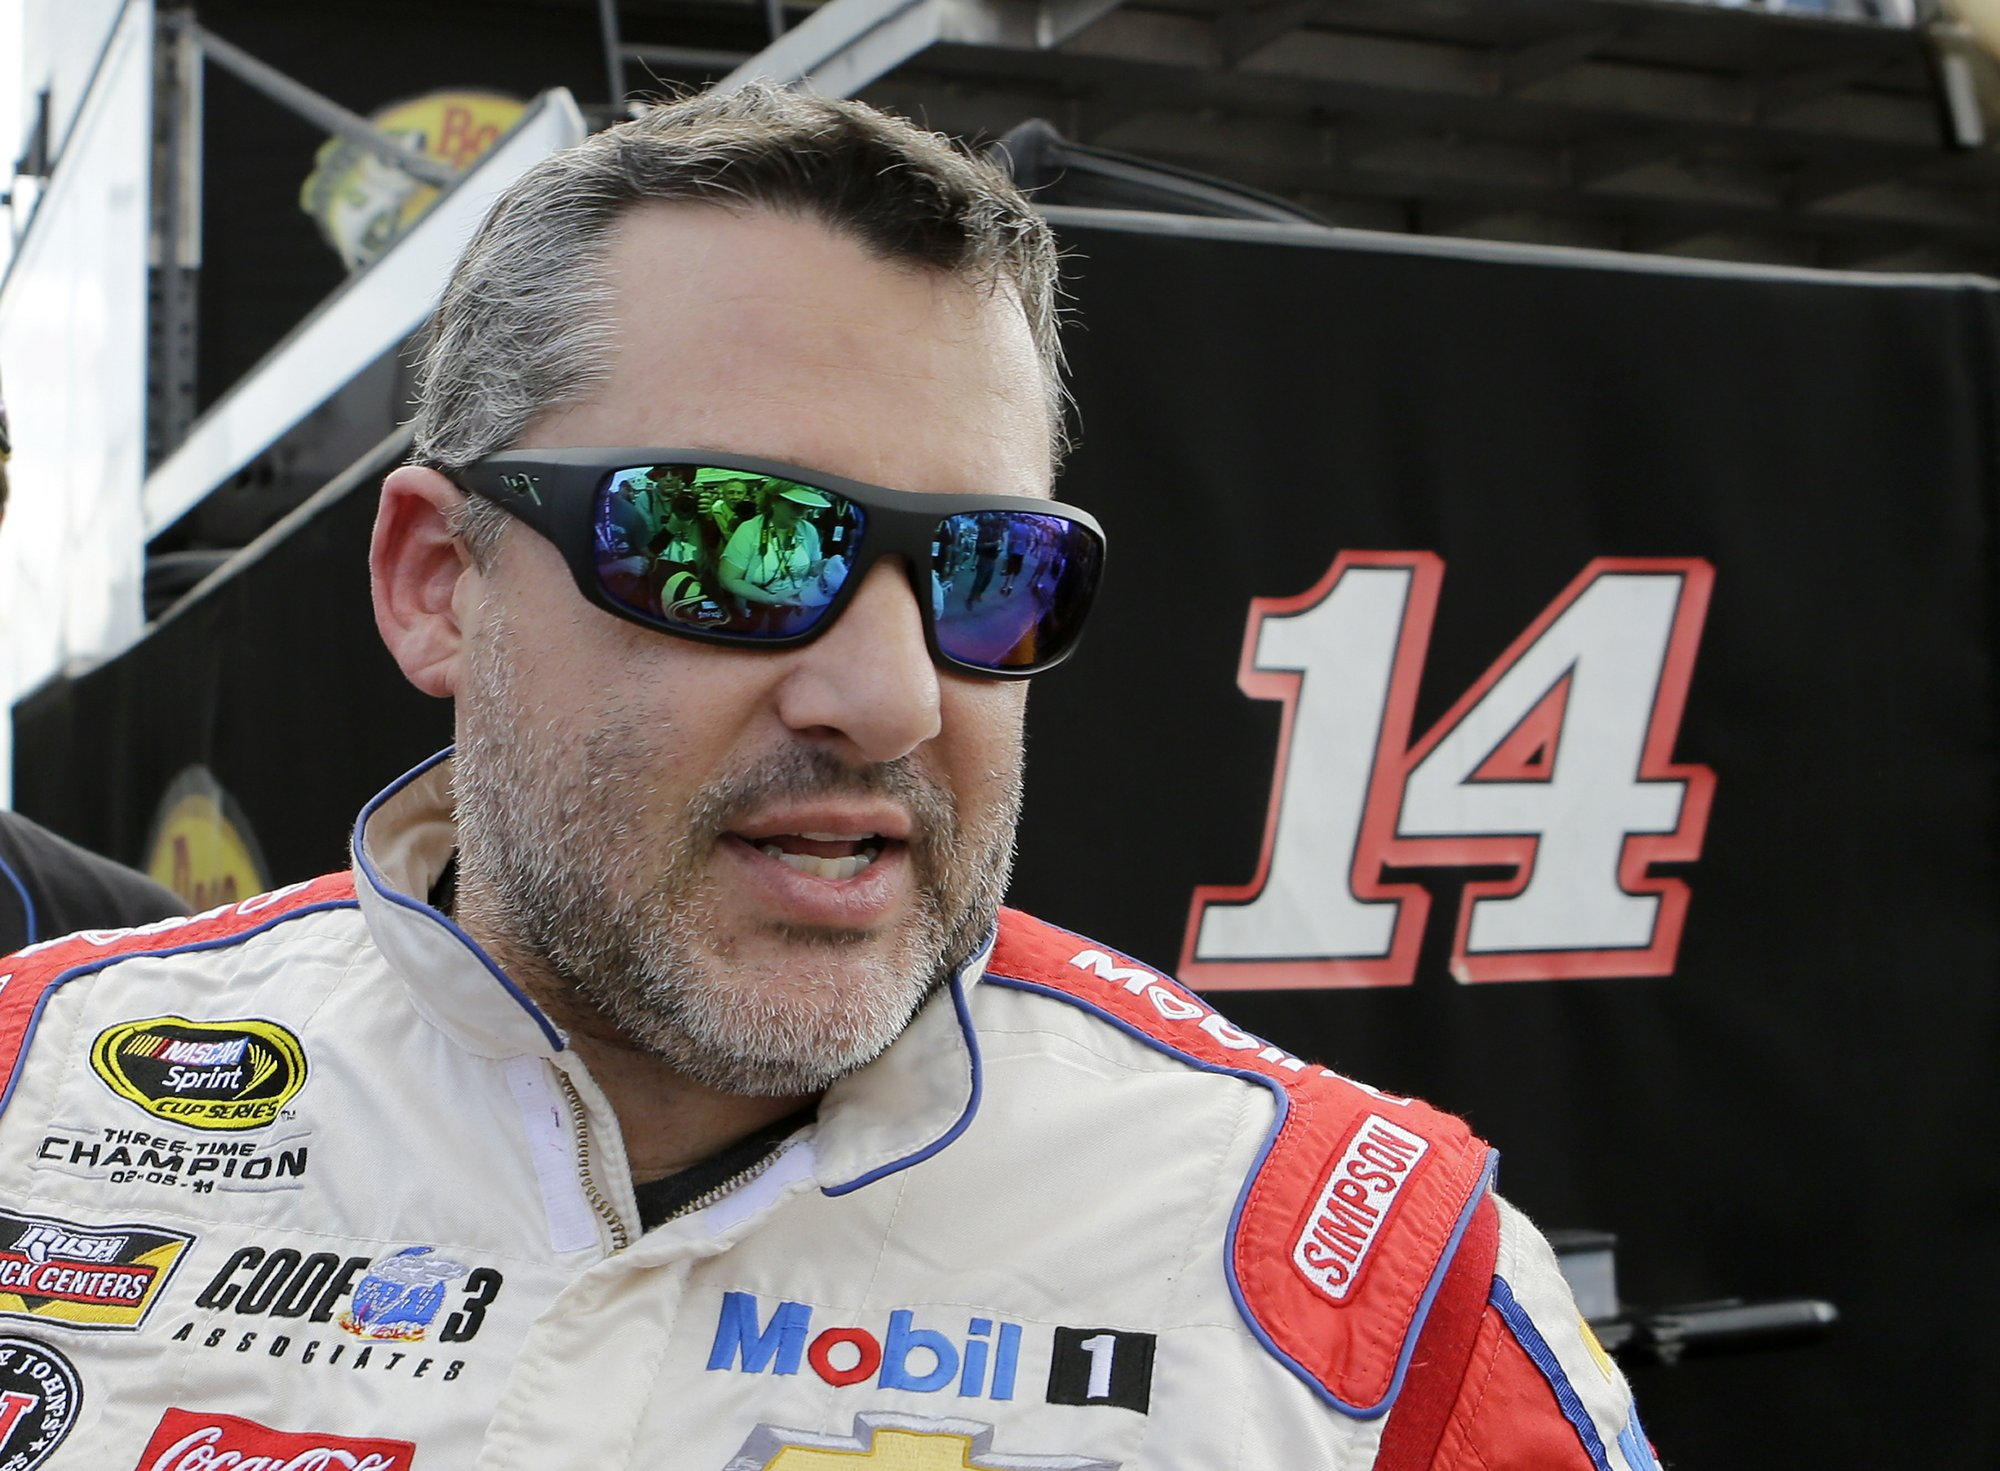 Only on AP: Tony Stewart reconsidering return to Indy 500